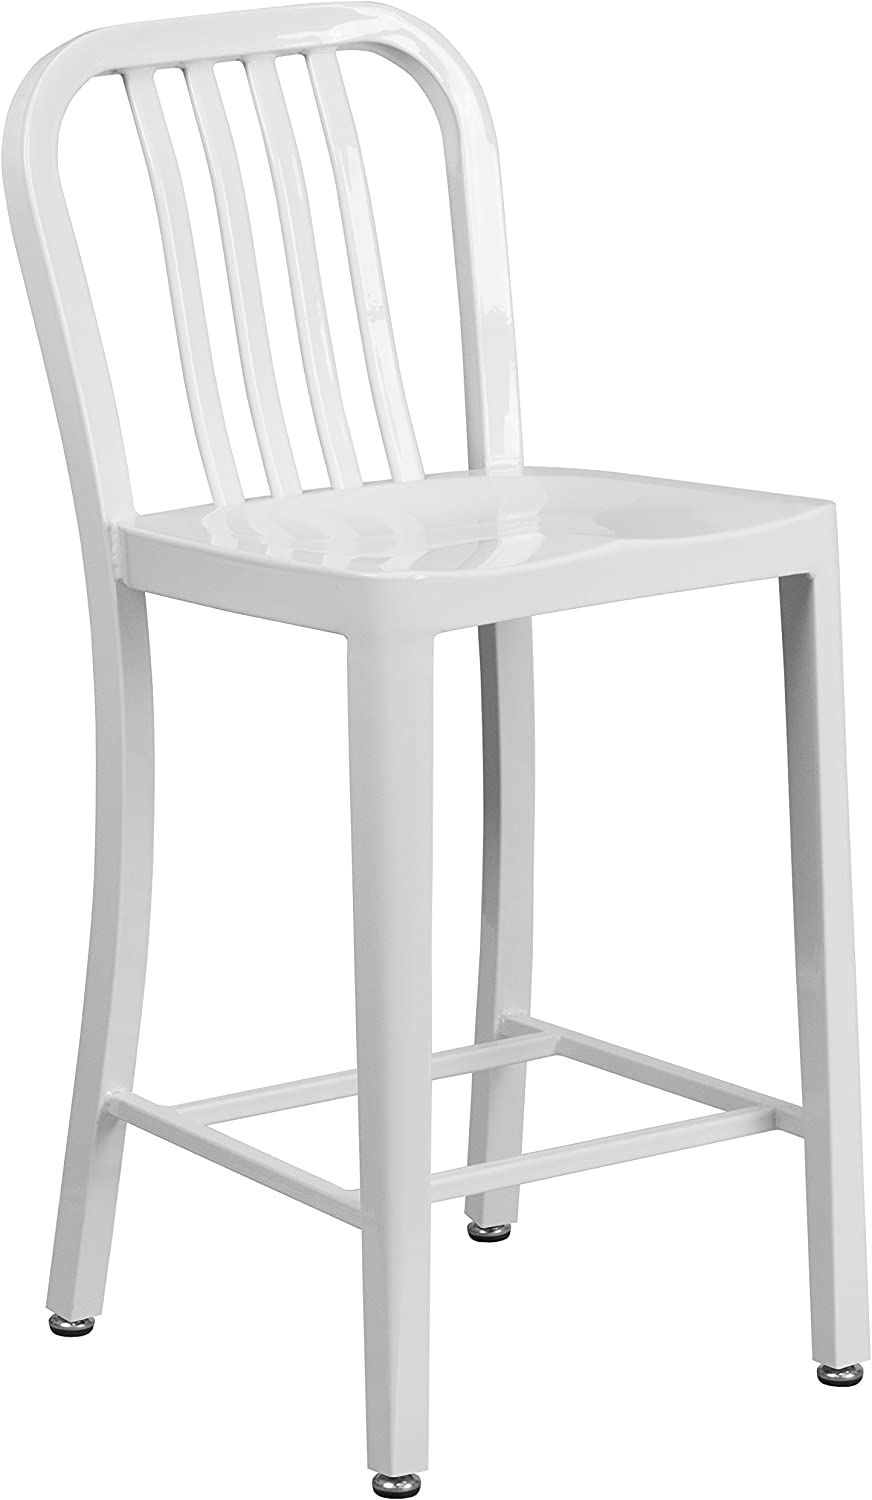 "Flash Furniture Commercial Grade 24"" High White Metal Indoor-Outdoor Counter Height Stool with Vertical Slat Back"